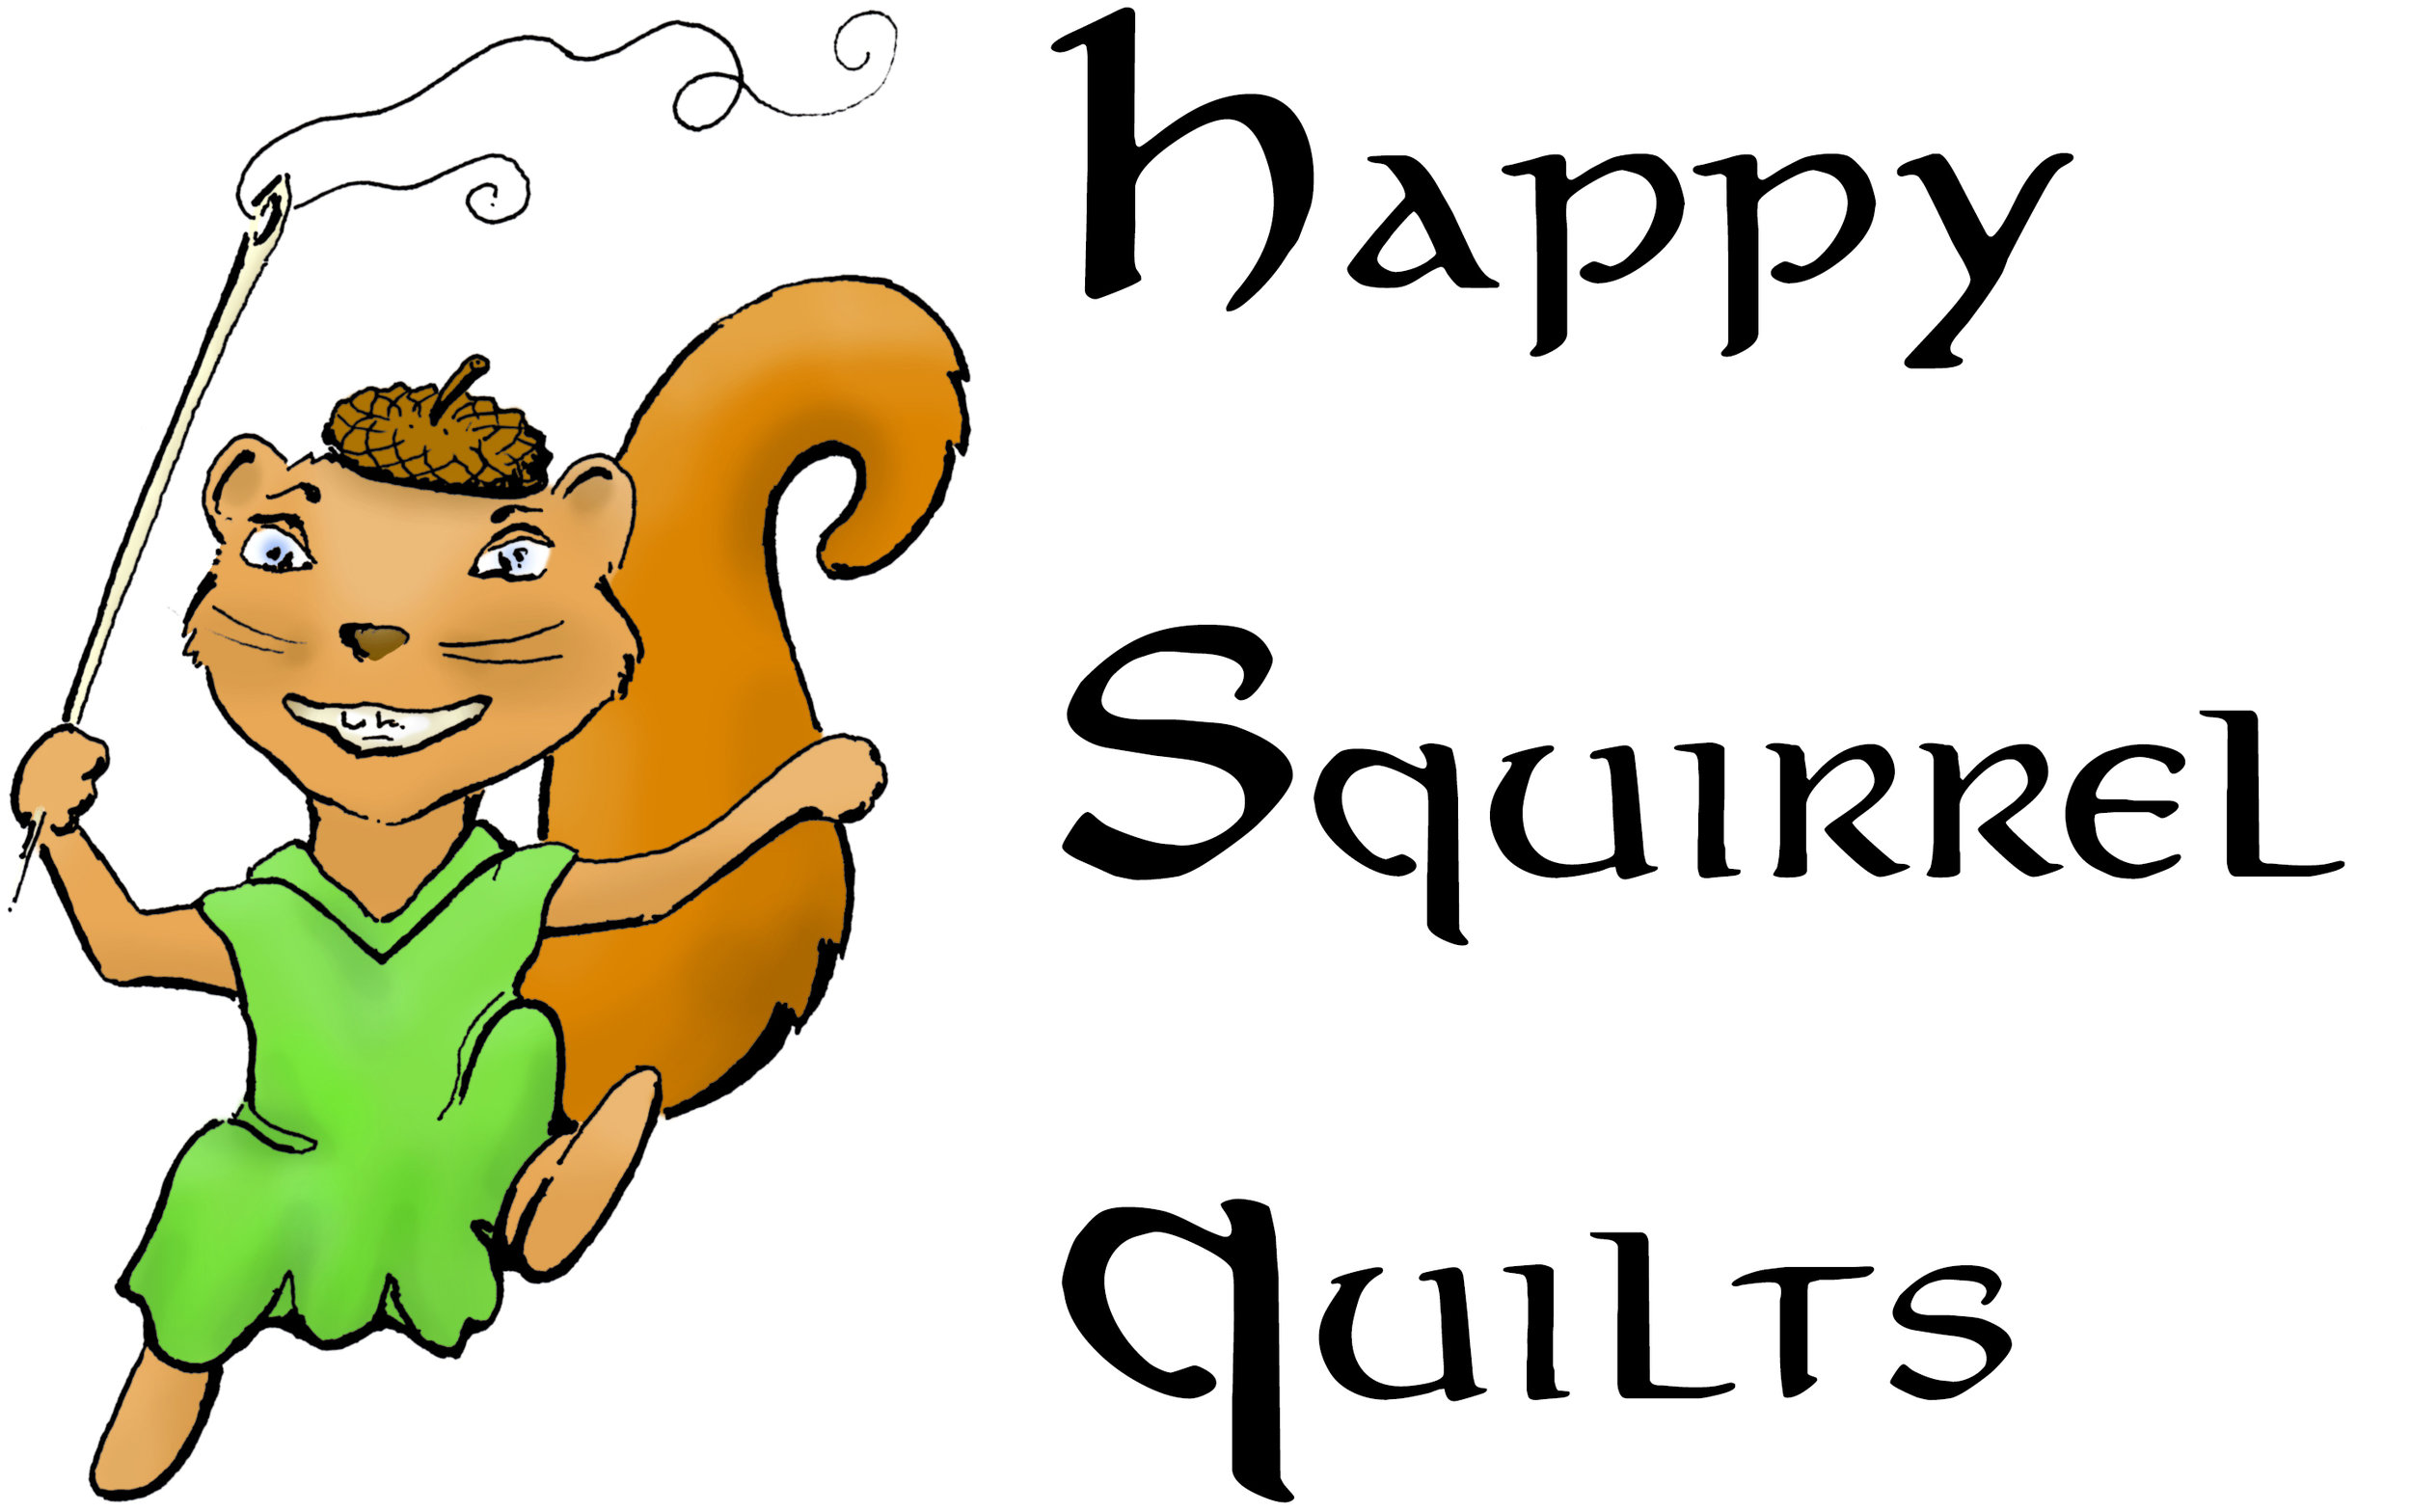 Happy Squirrel Quilts